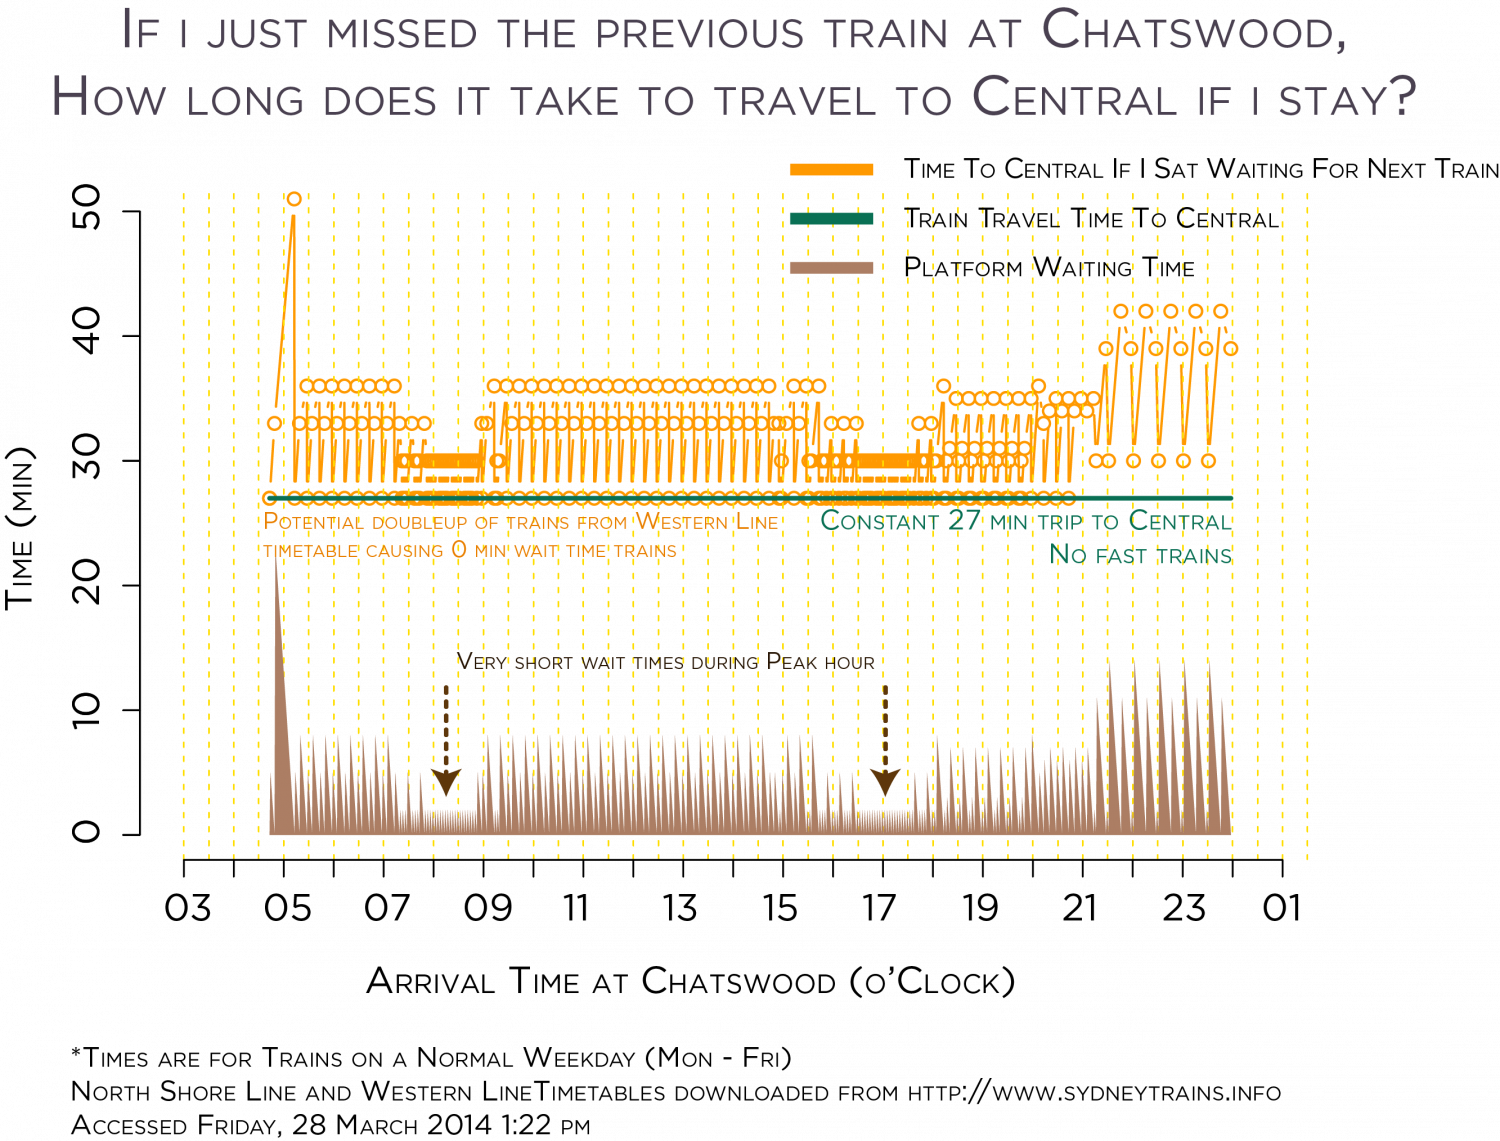 Sydney Trains Worst Case Travel Times (Chatswood-Central) Infographic